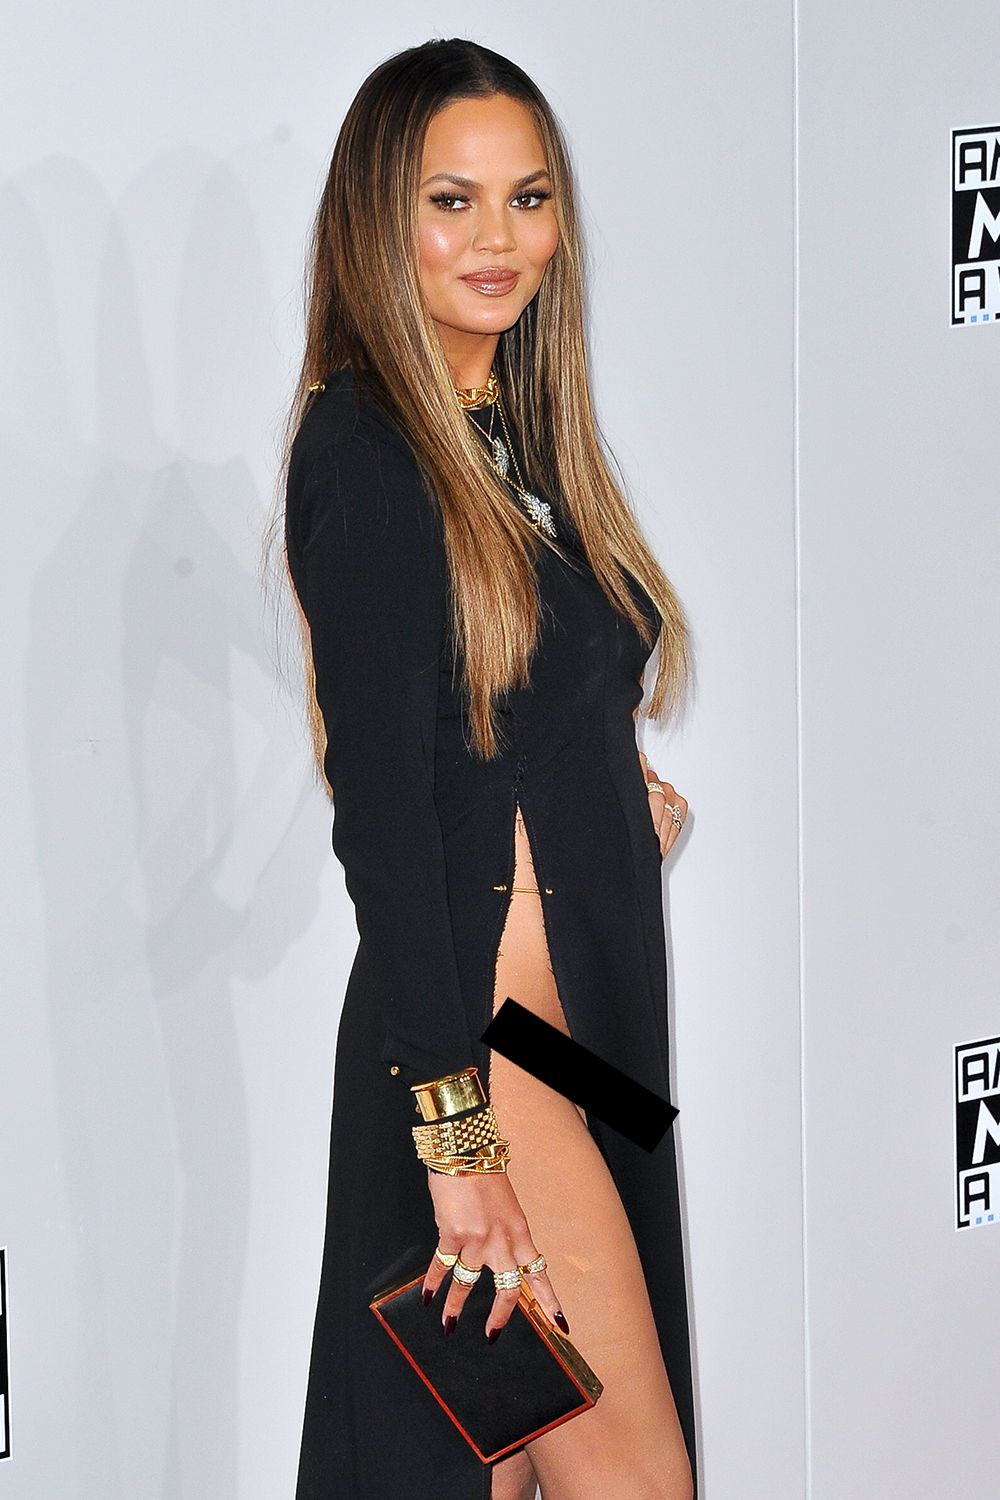 Discussion on this topic: The 29 Most NSFW Celebrity WardrobeMalfunctions, the-29-most-nsfw-celebrity-wardrobemalfunctions/